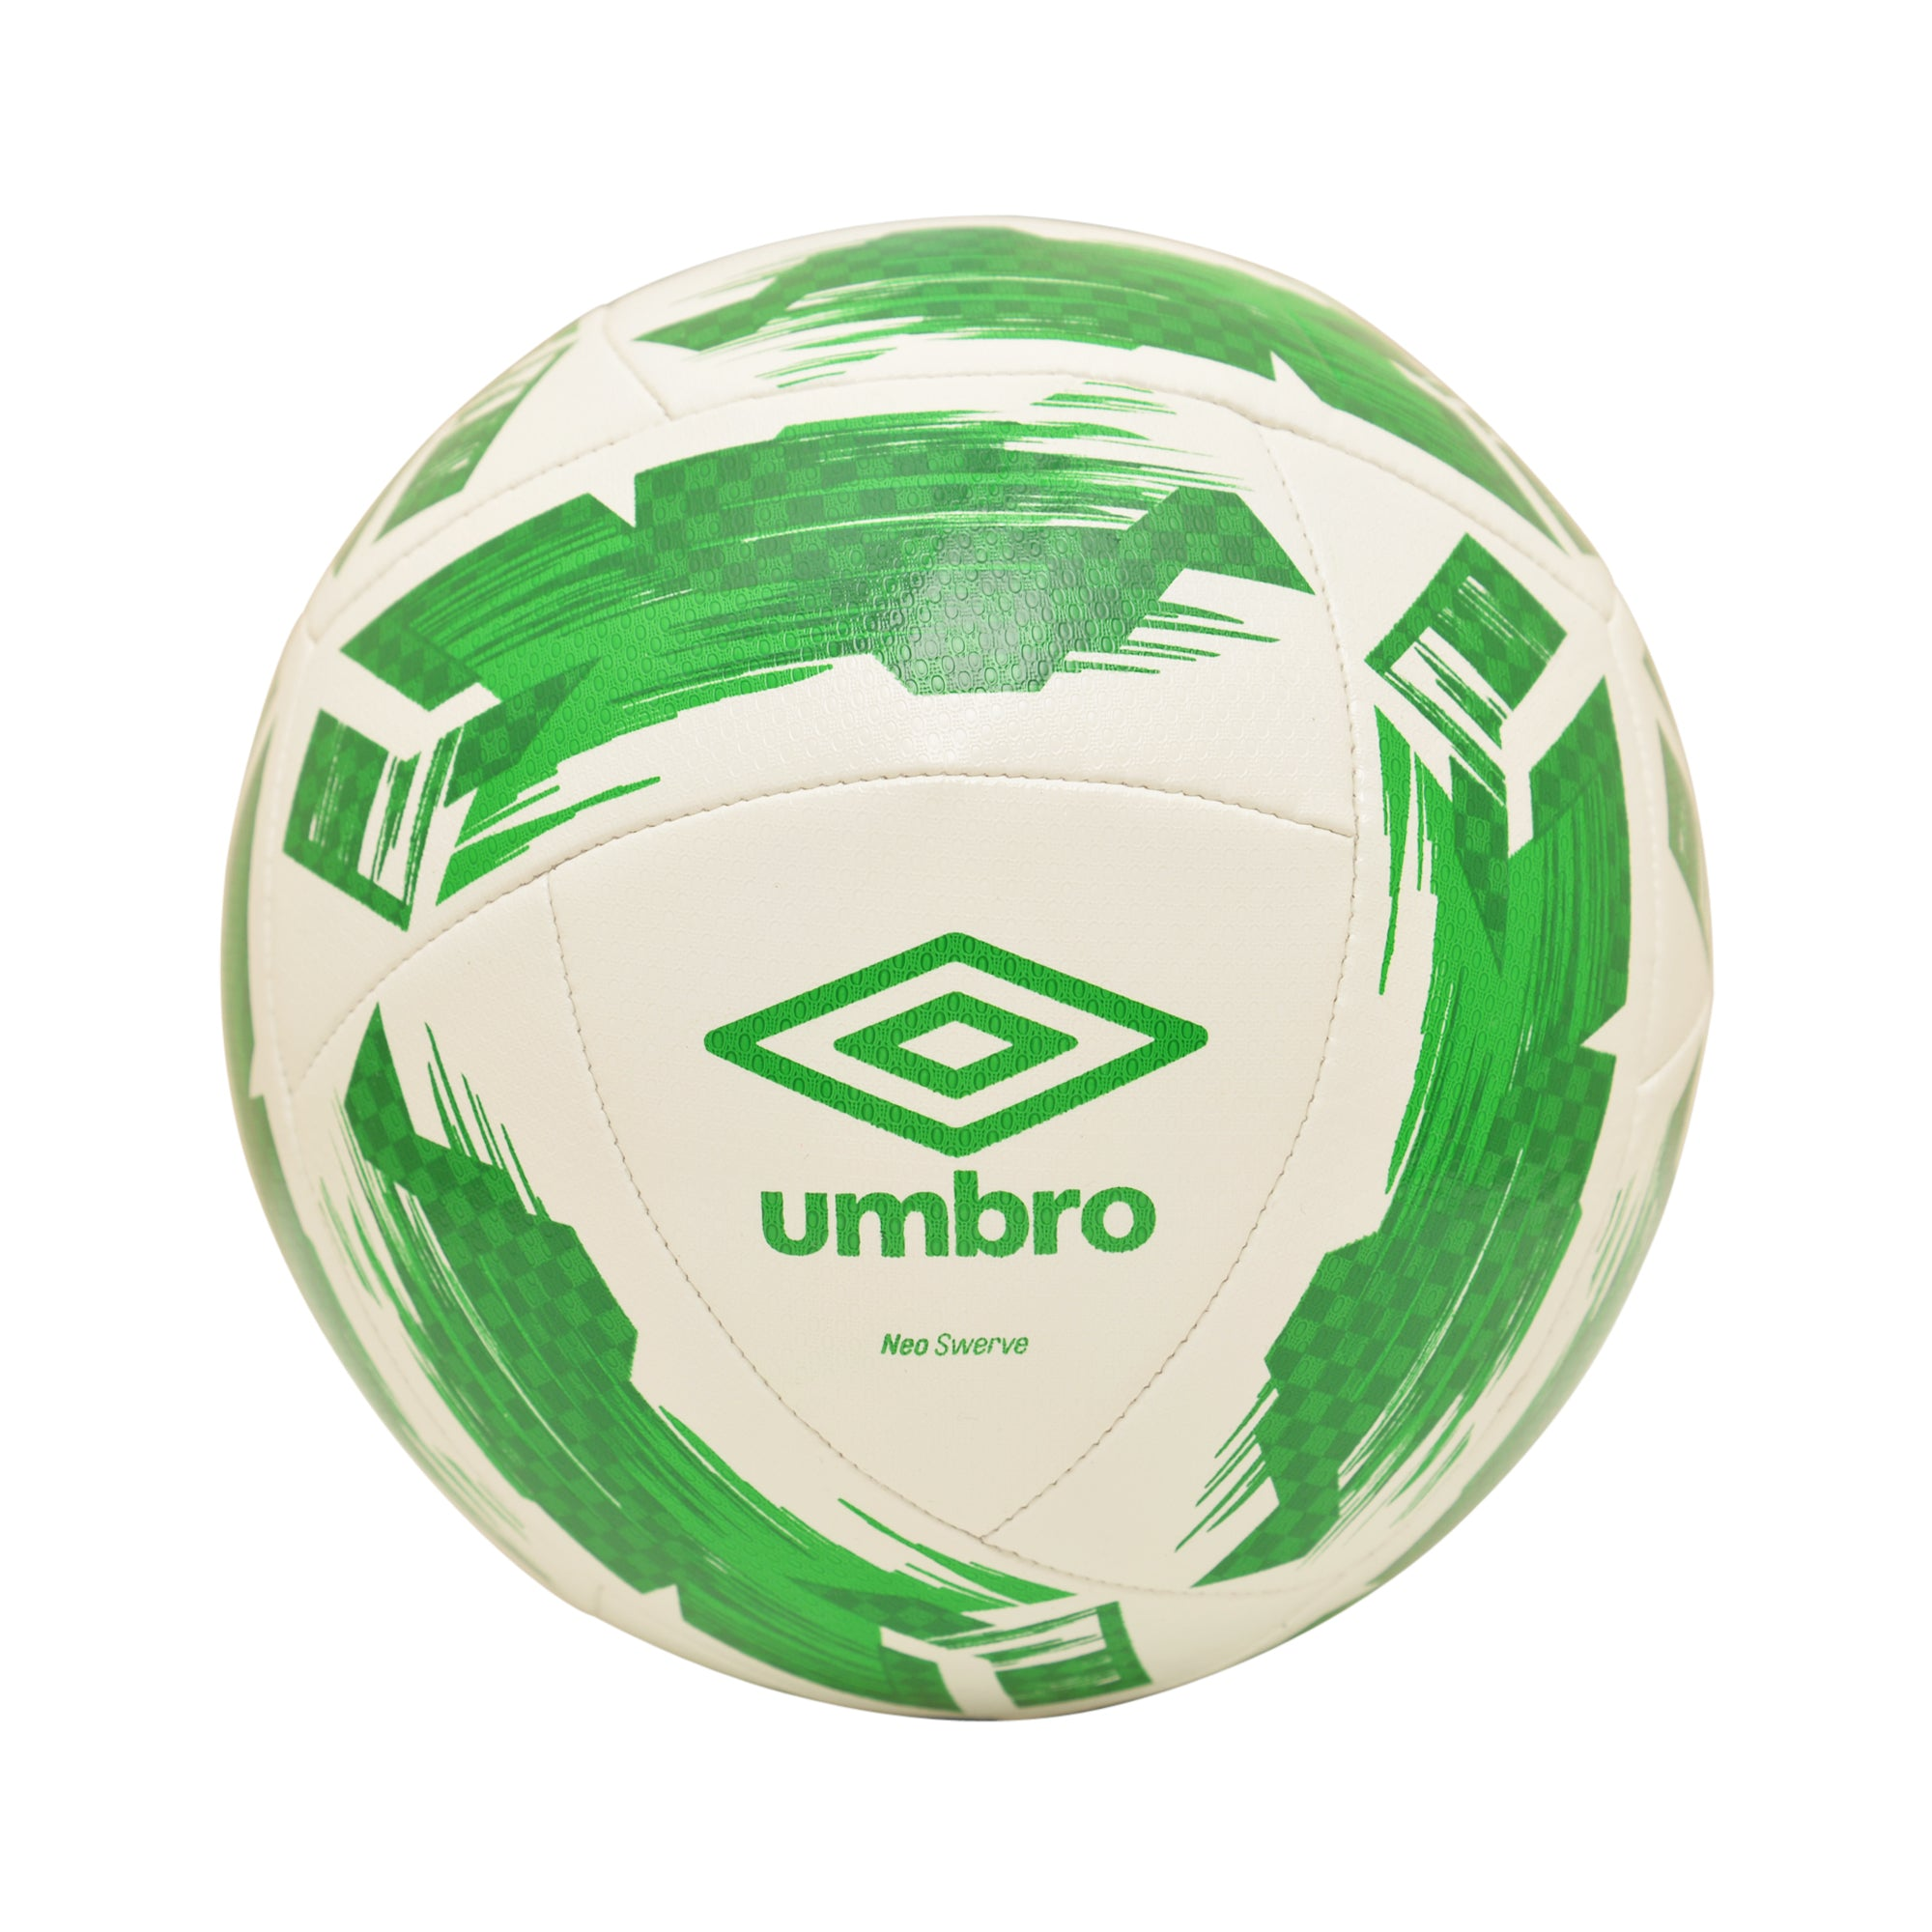 Umbro Neo Swerve - White/Green